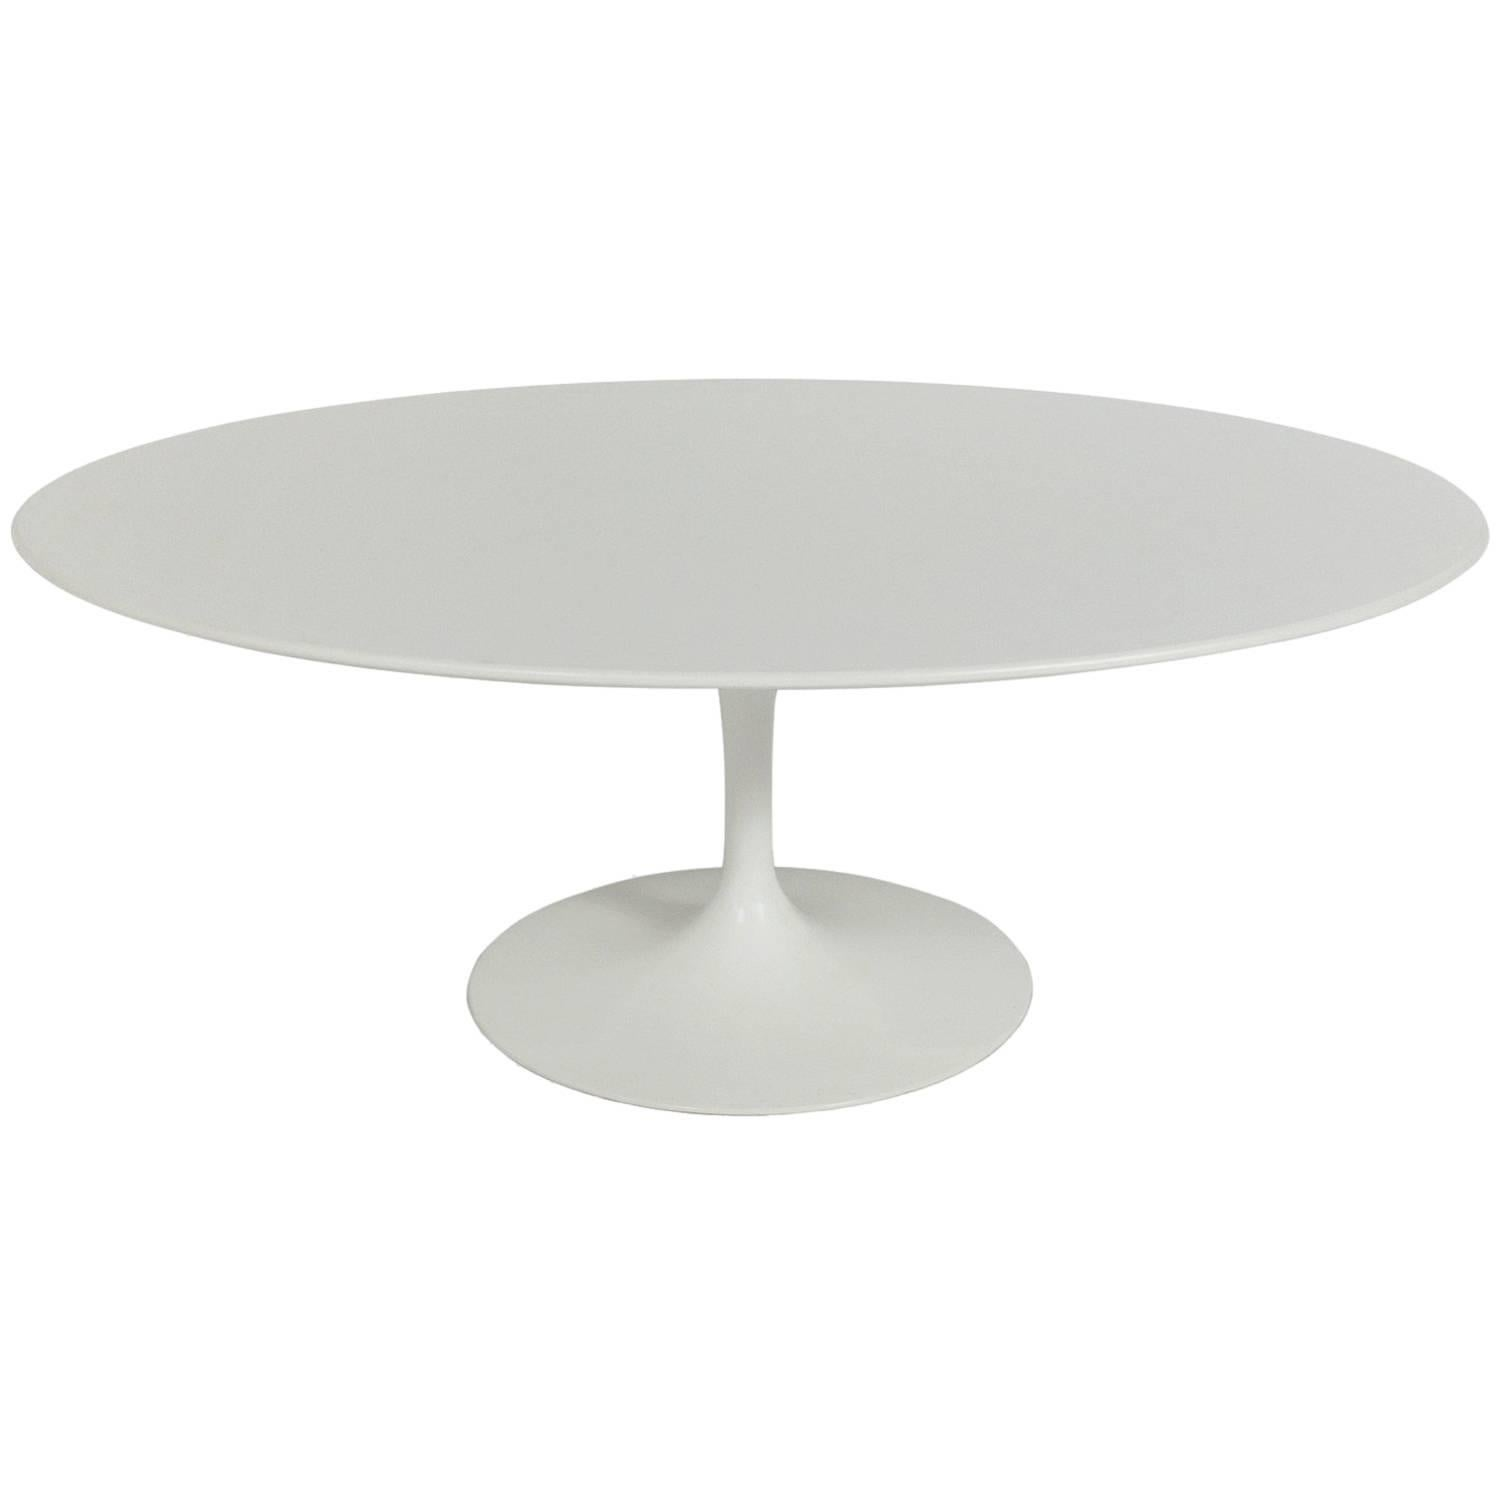 Oval Tulip Coffee Table By Eero Saarinen For Knoll